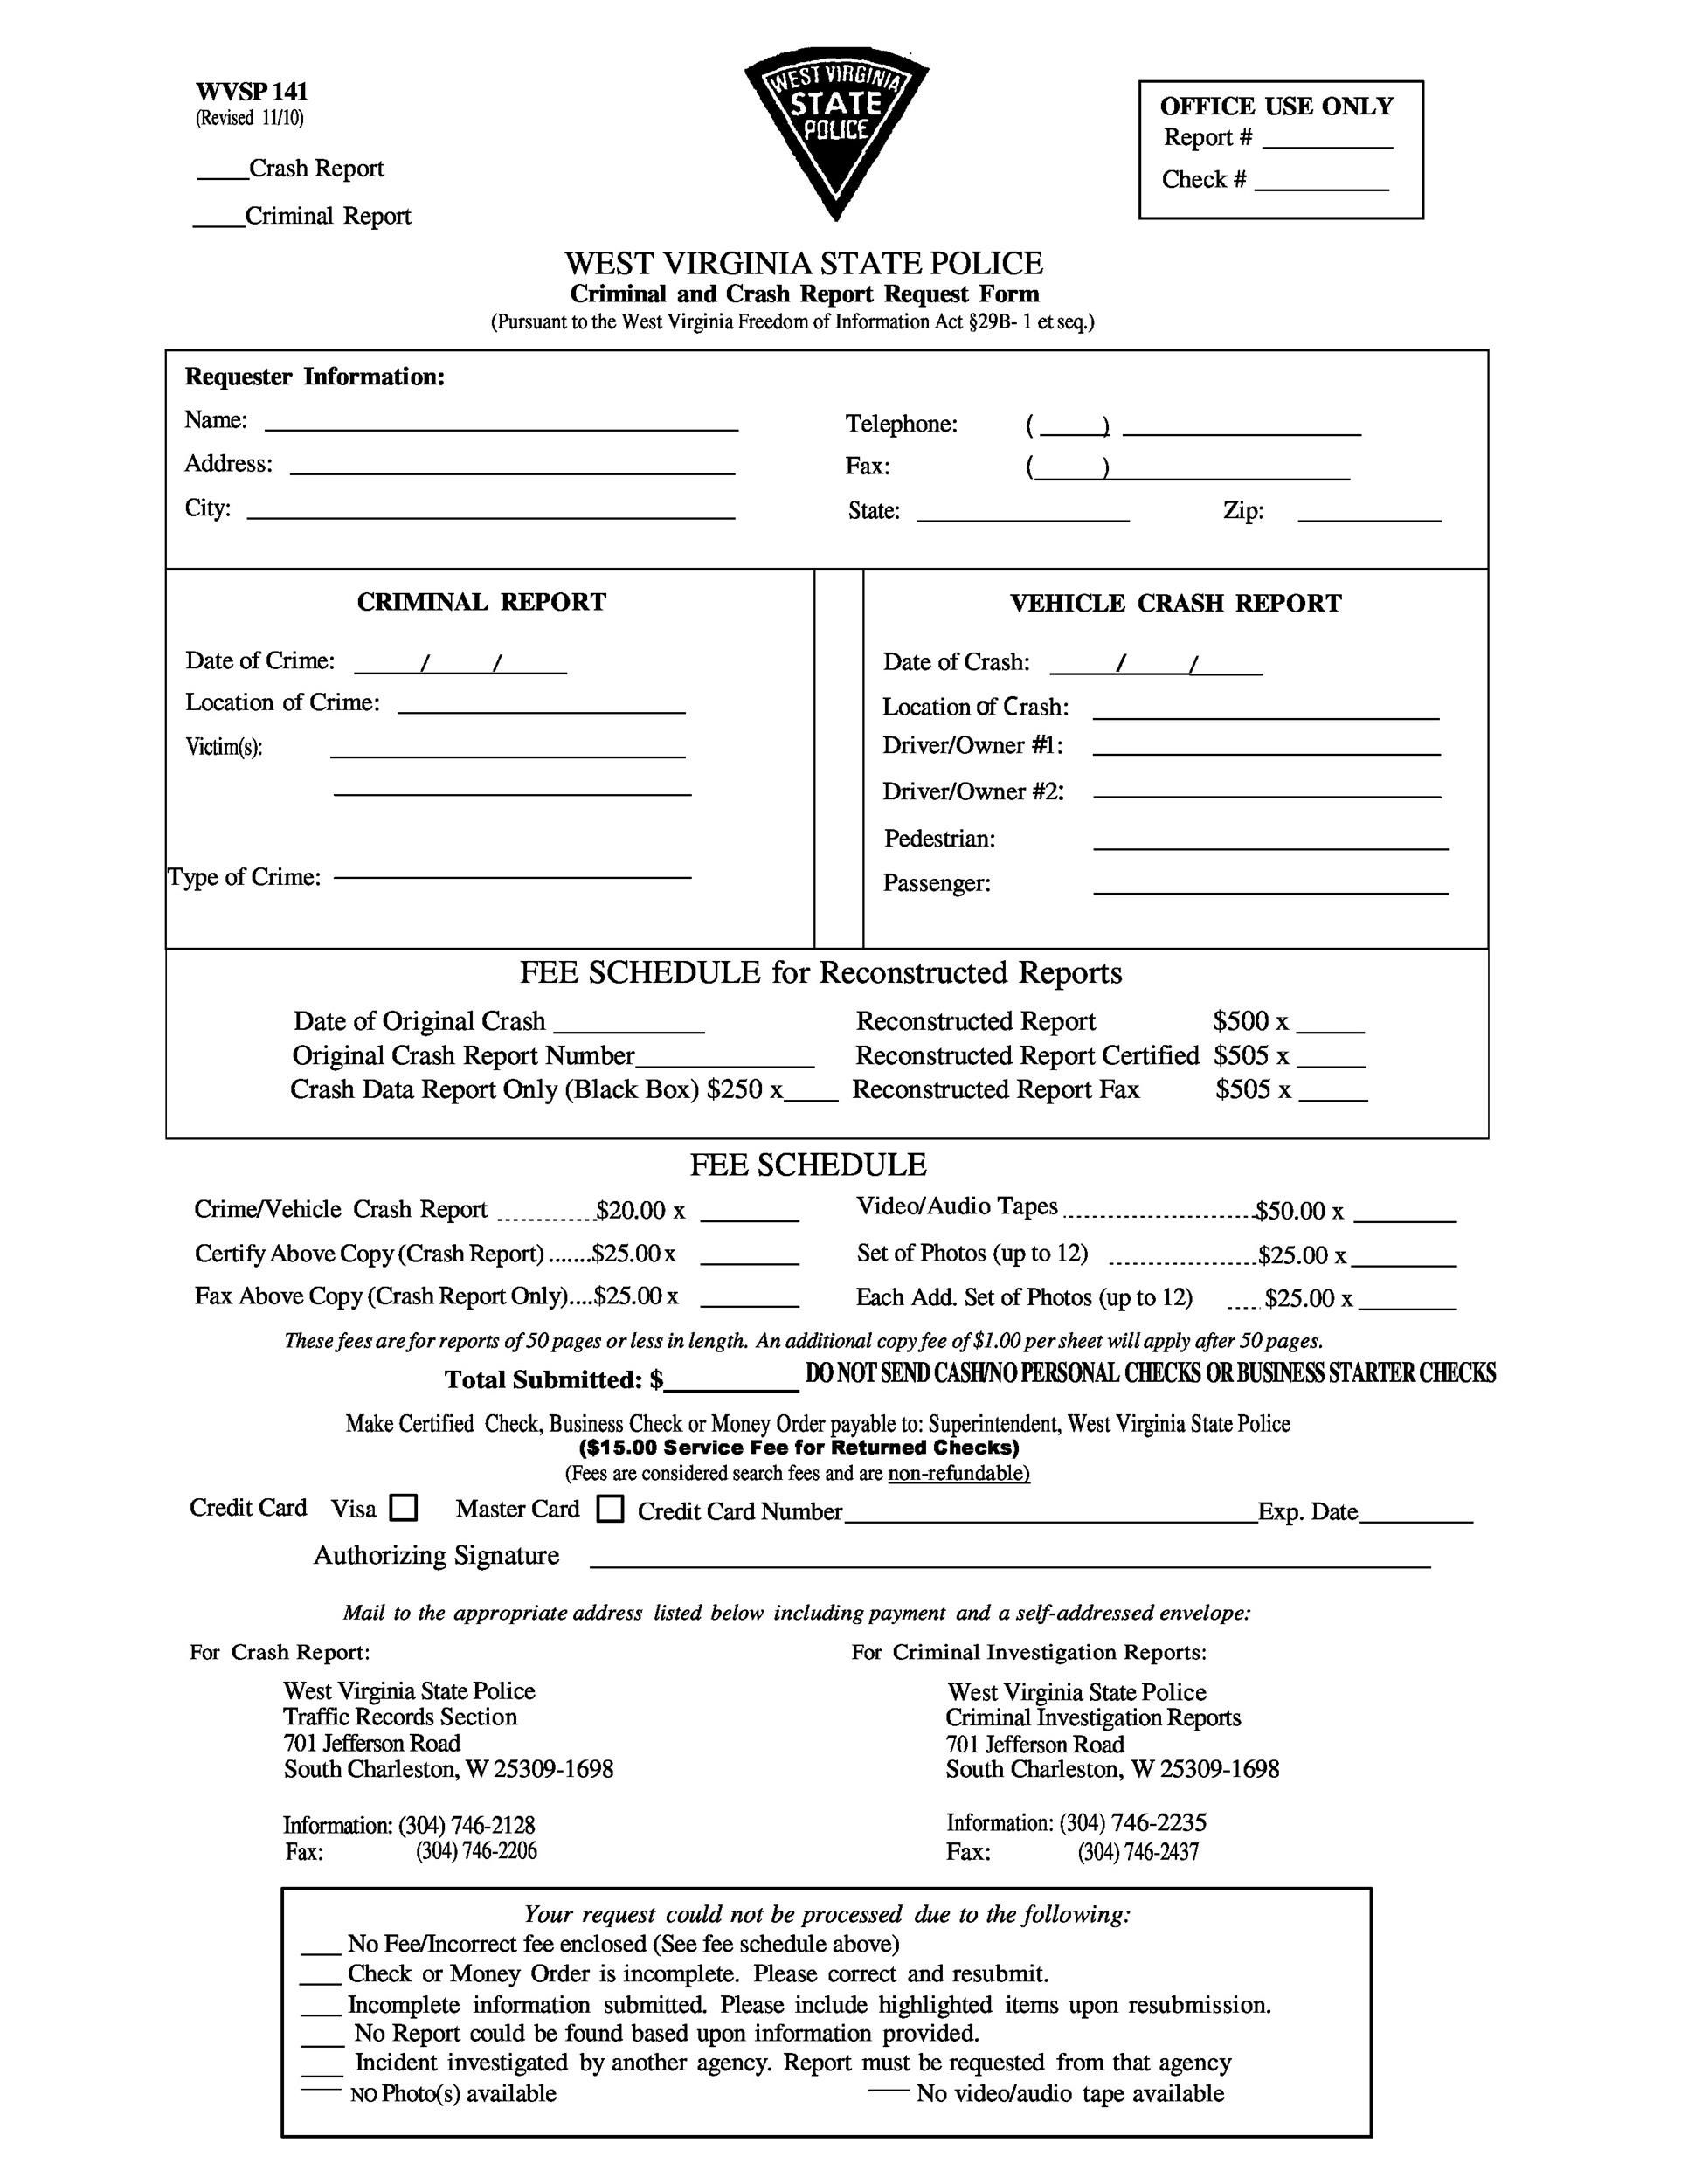 007 Unforgettable Police Report Template Microsoft Word High Definition Full